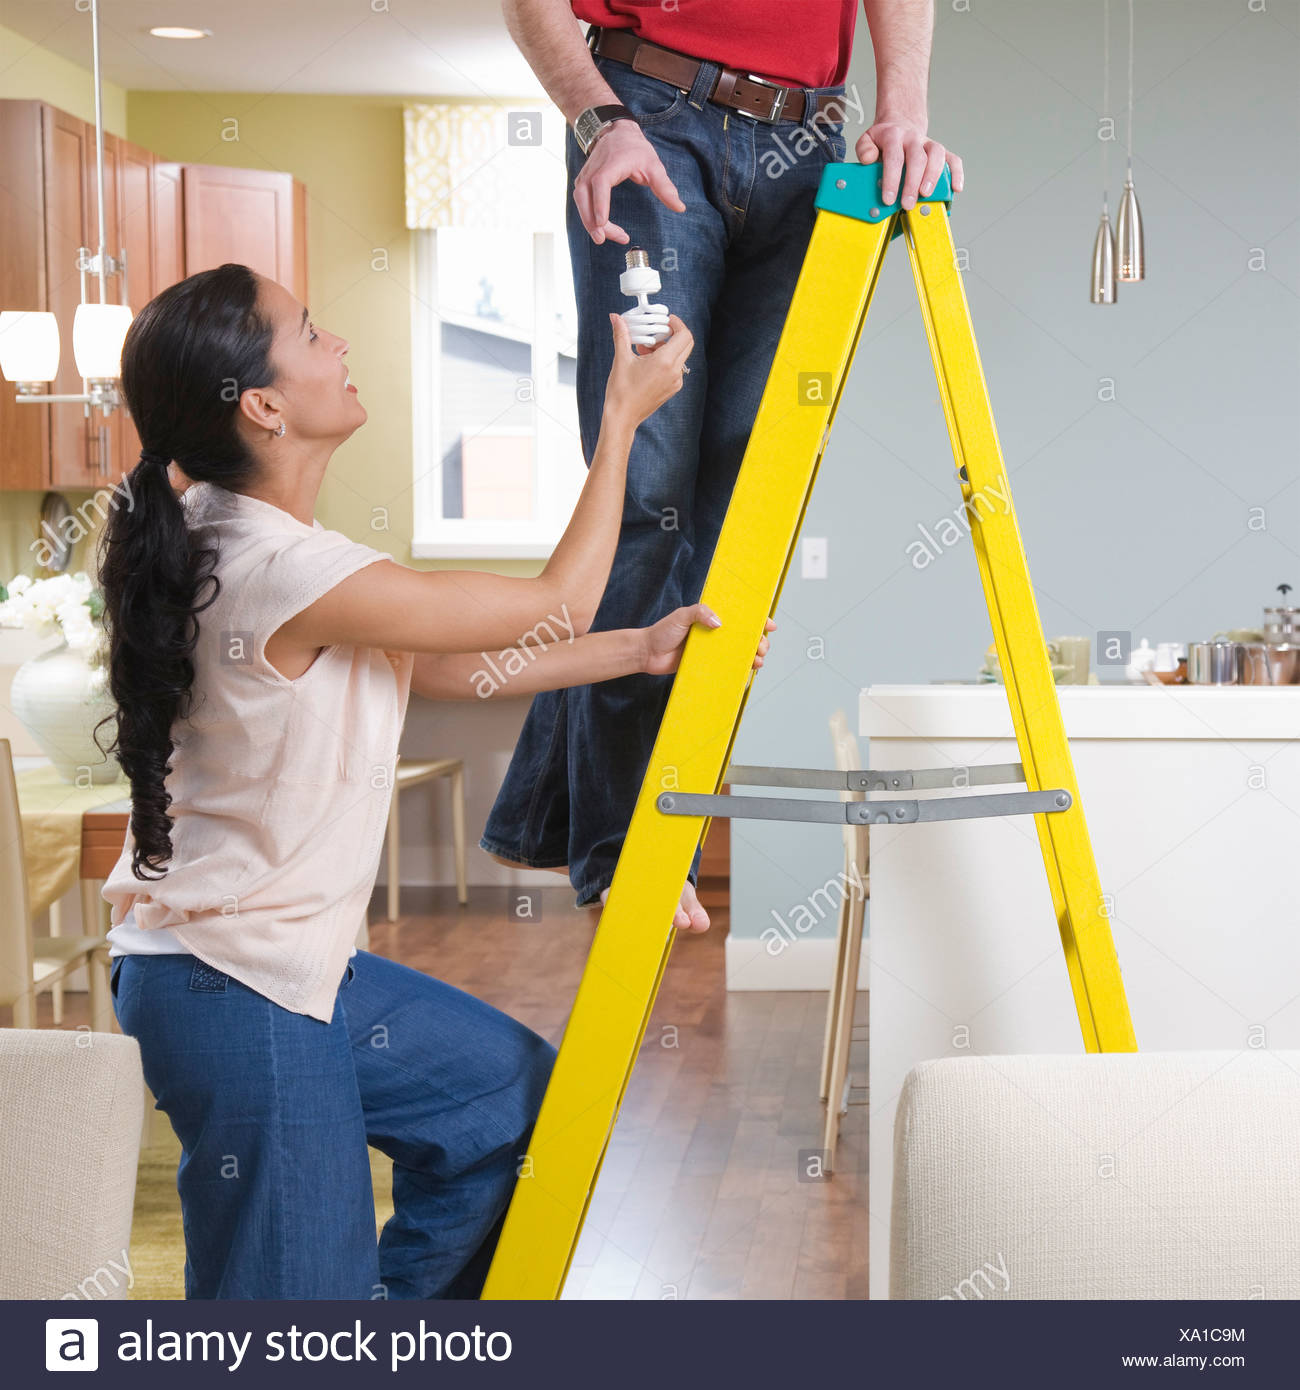 woman helping man with home improvements - Stock Image